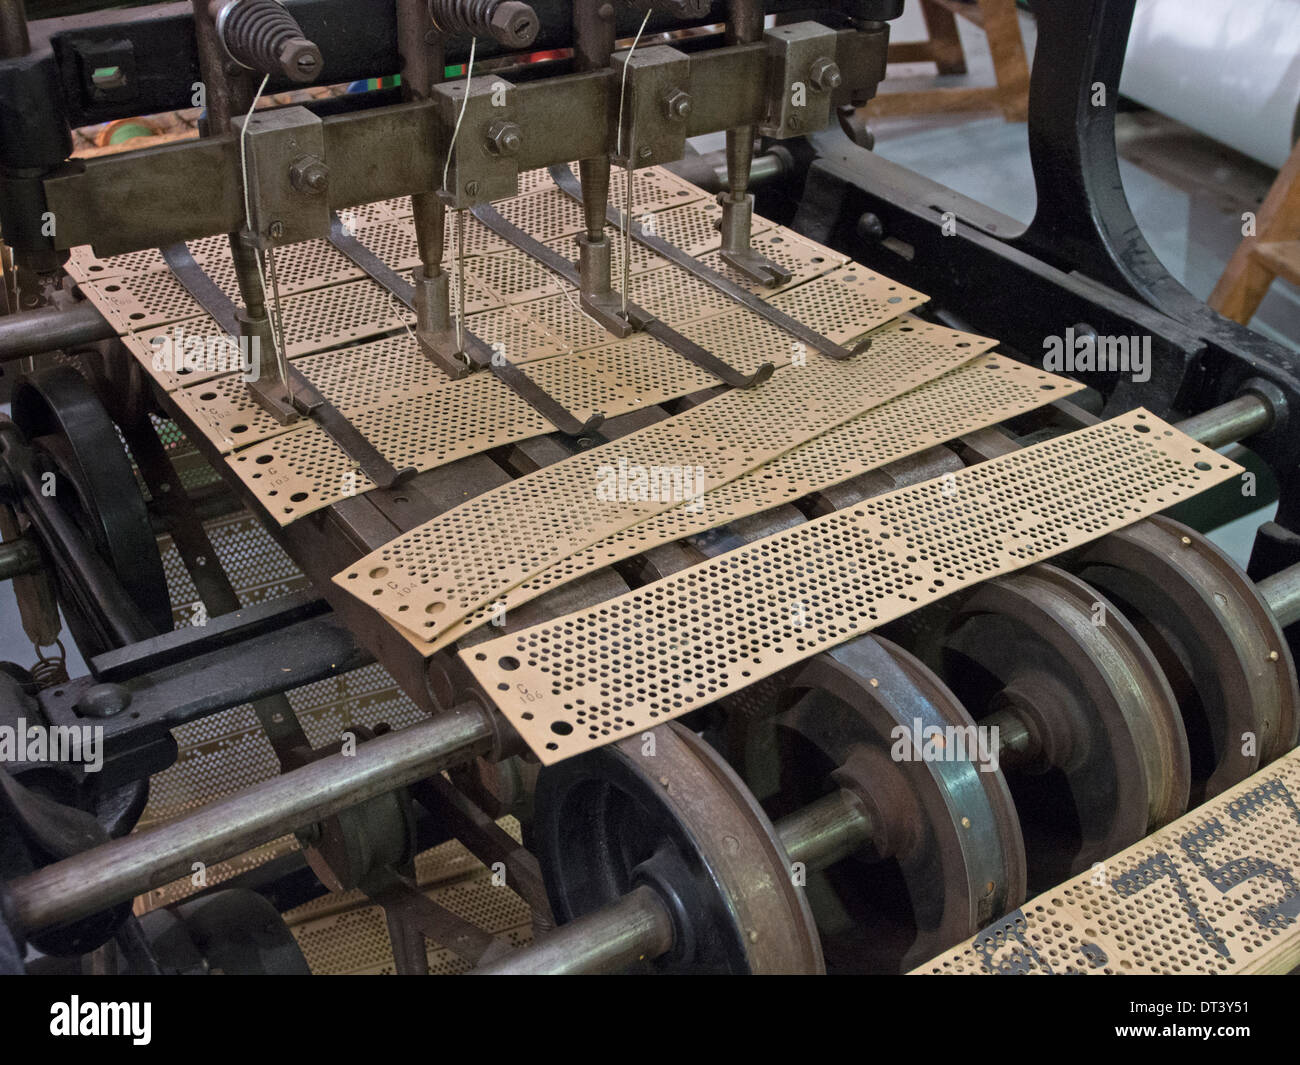 A machine for stitching together the Jacquard cards which control the pattern being woven by an automated loom. Stock Photo